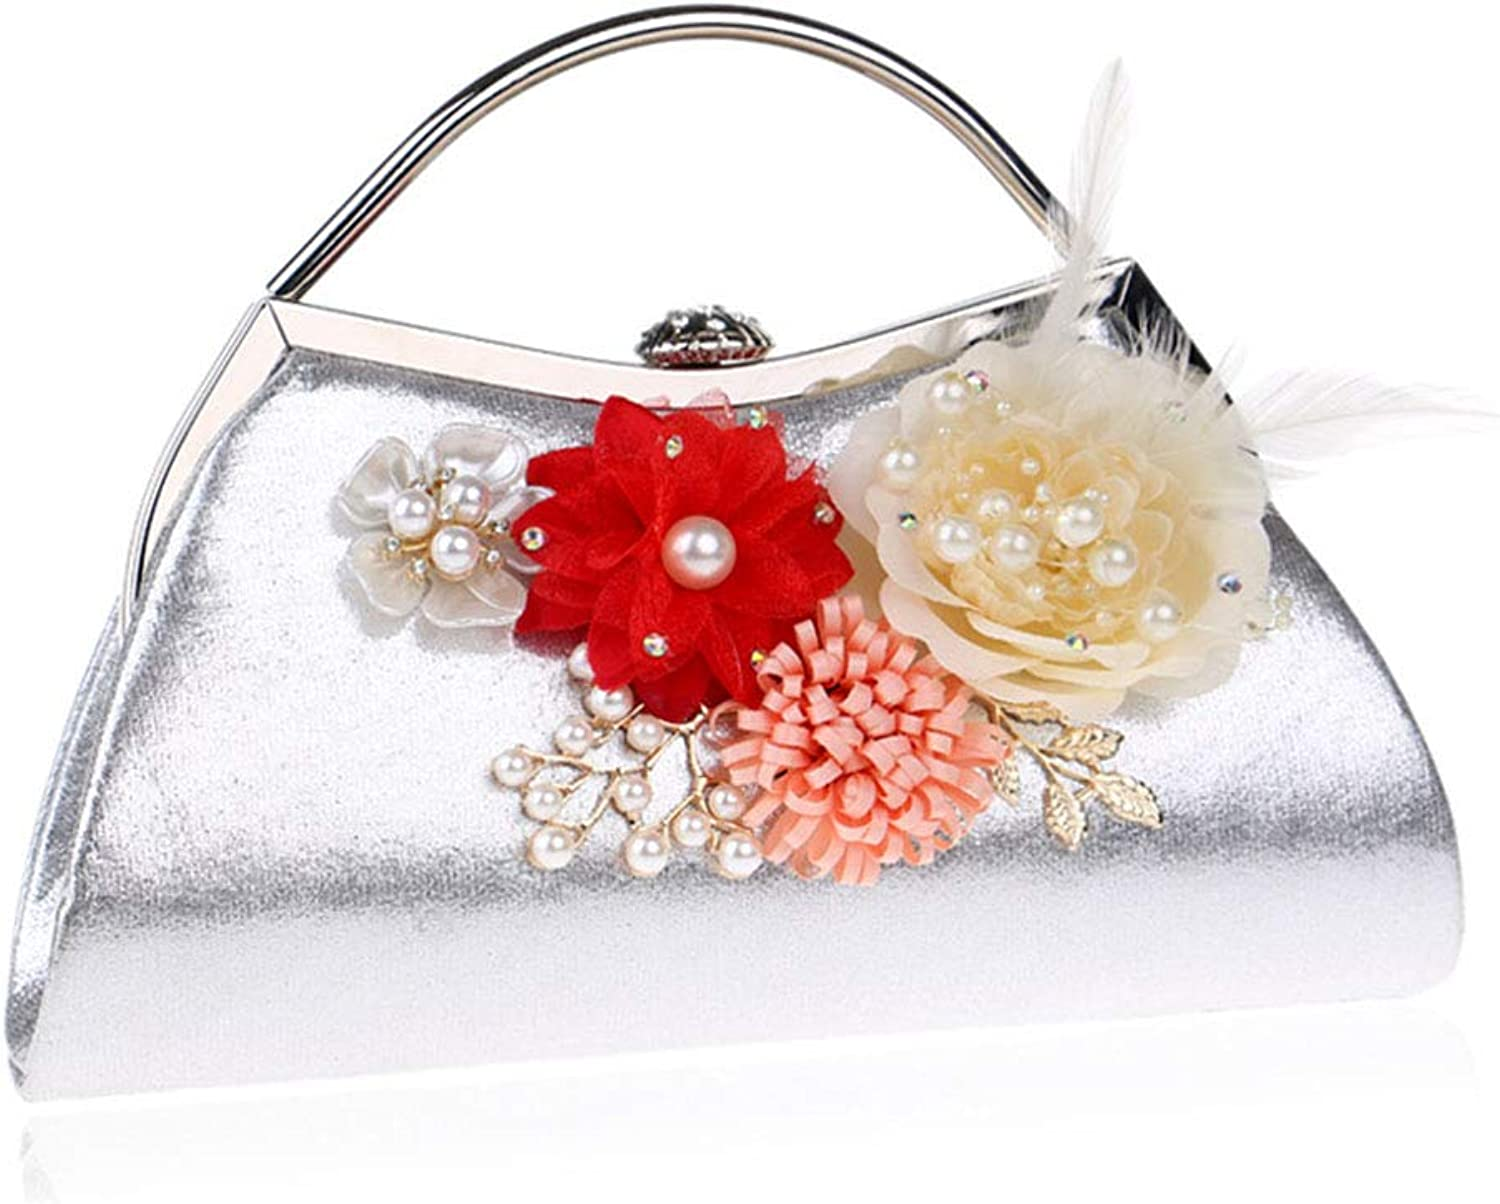 Women's Handbag, Ladies Flower Luxury Party Bag, Evening Bag, Bride Clutch, Evening Bag, Prom Bag, Wallet